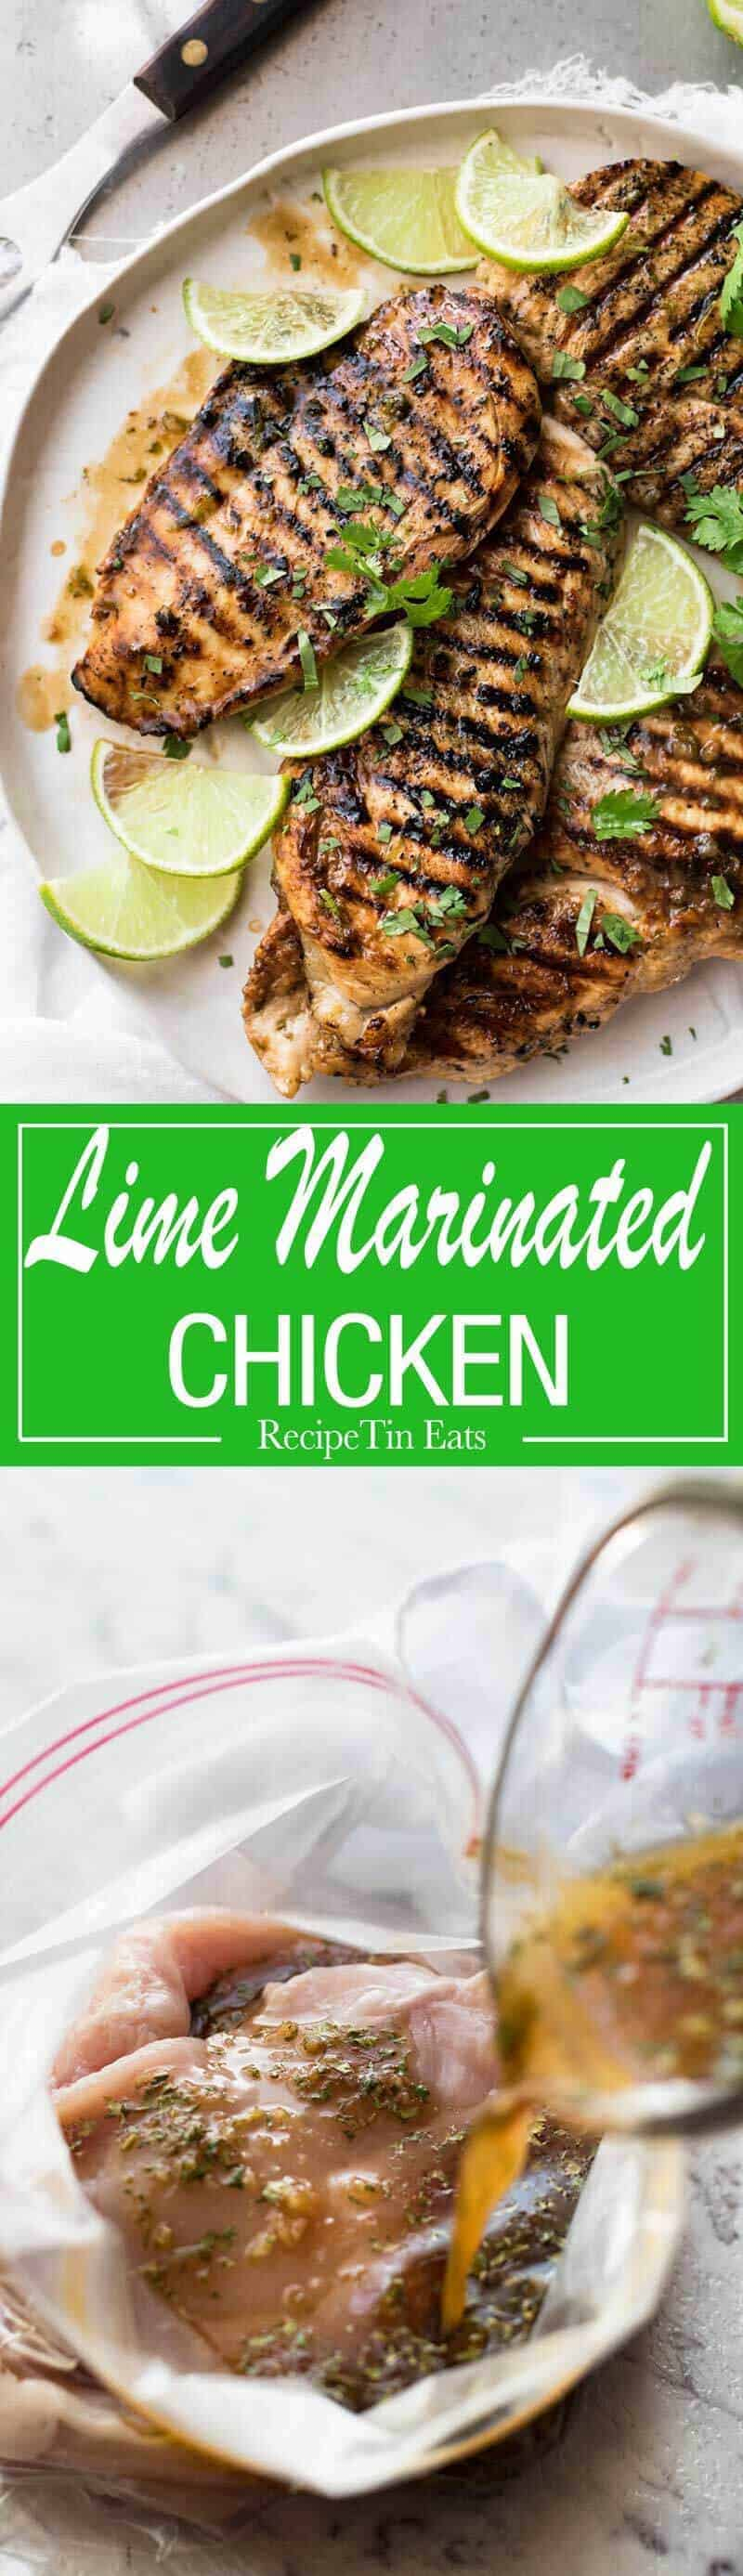 Lovely depth of flavour in this simple marinade that REALLY infuses the chicken with lime flavours! www.recipetineats.com